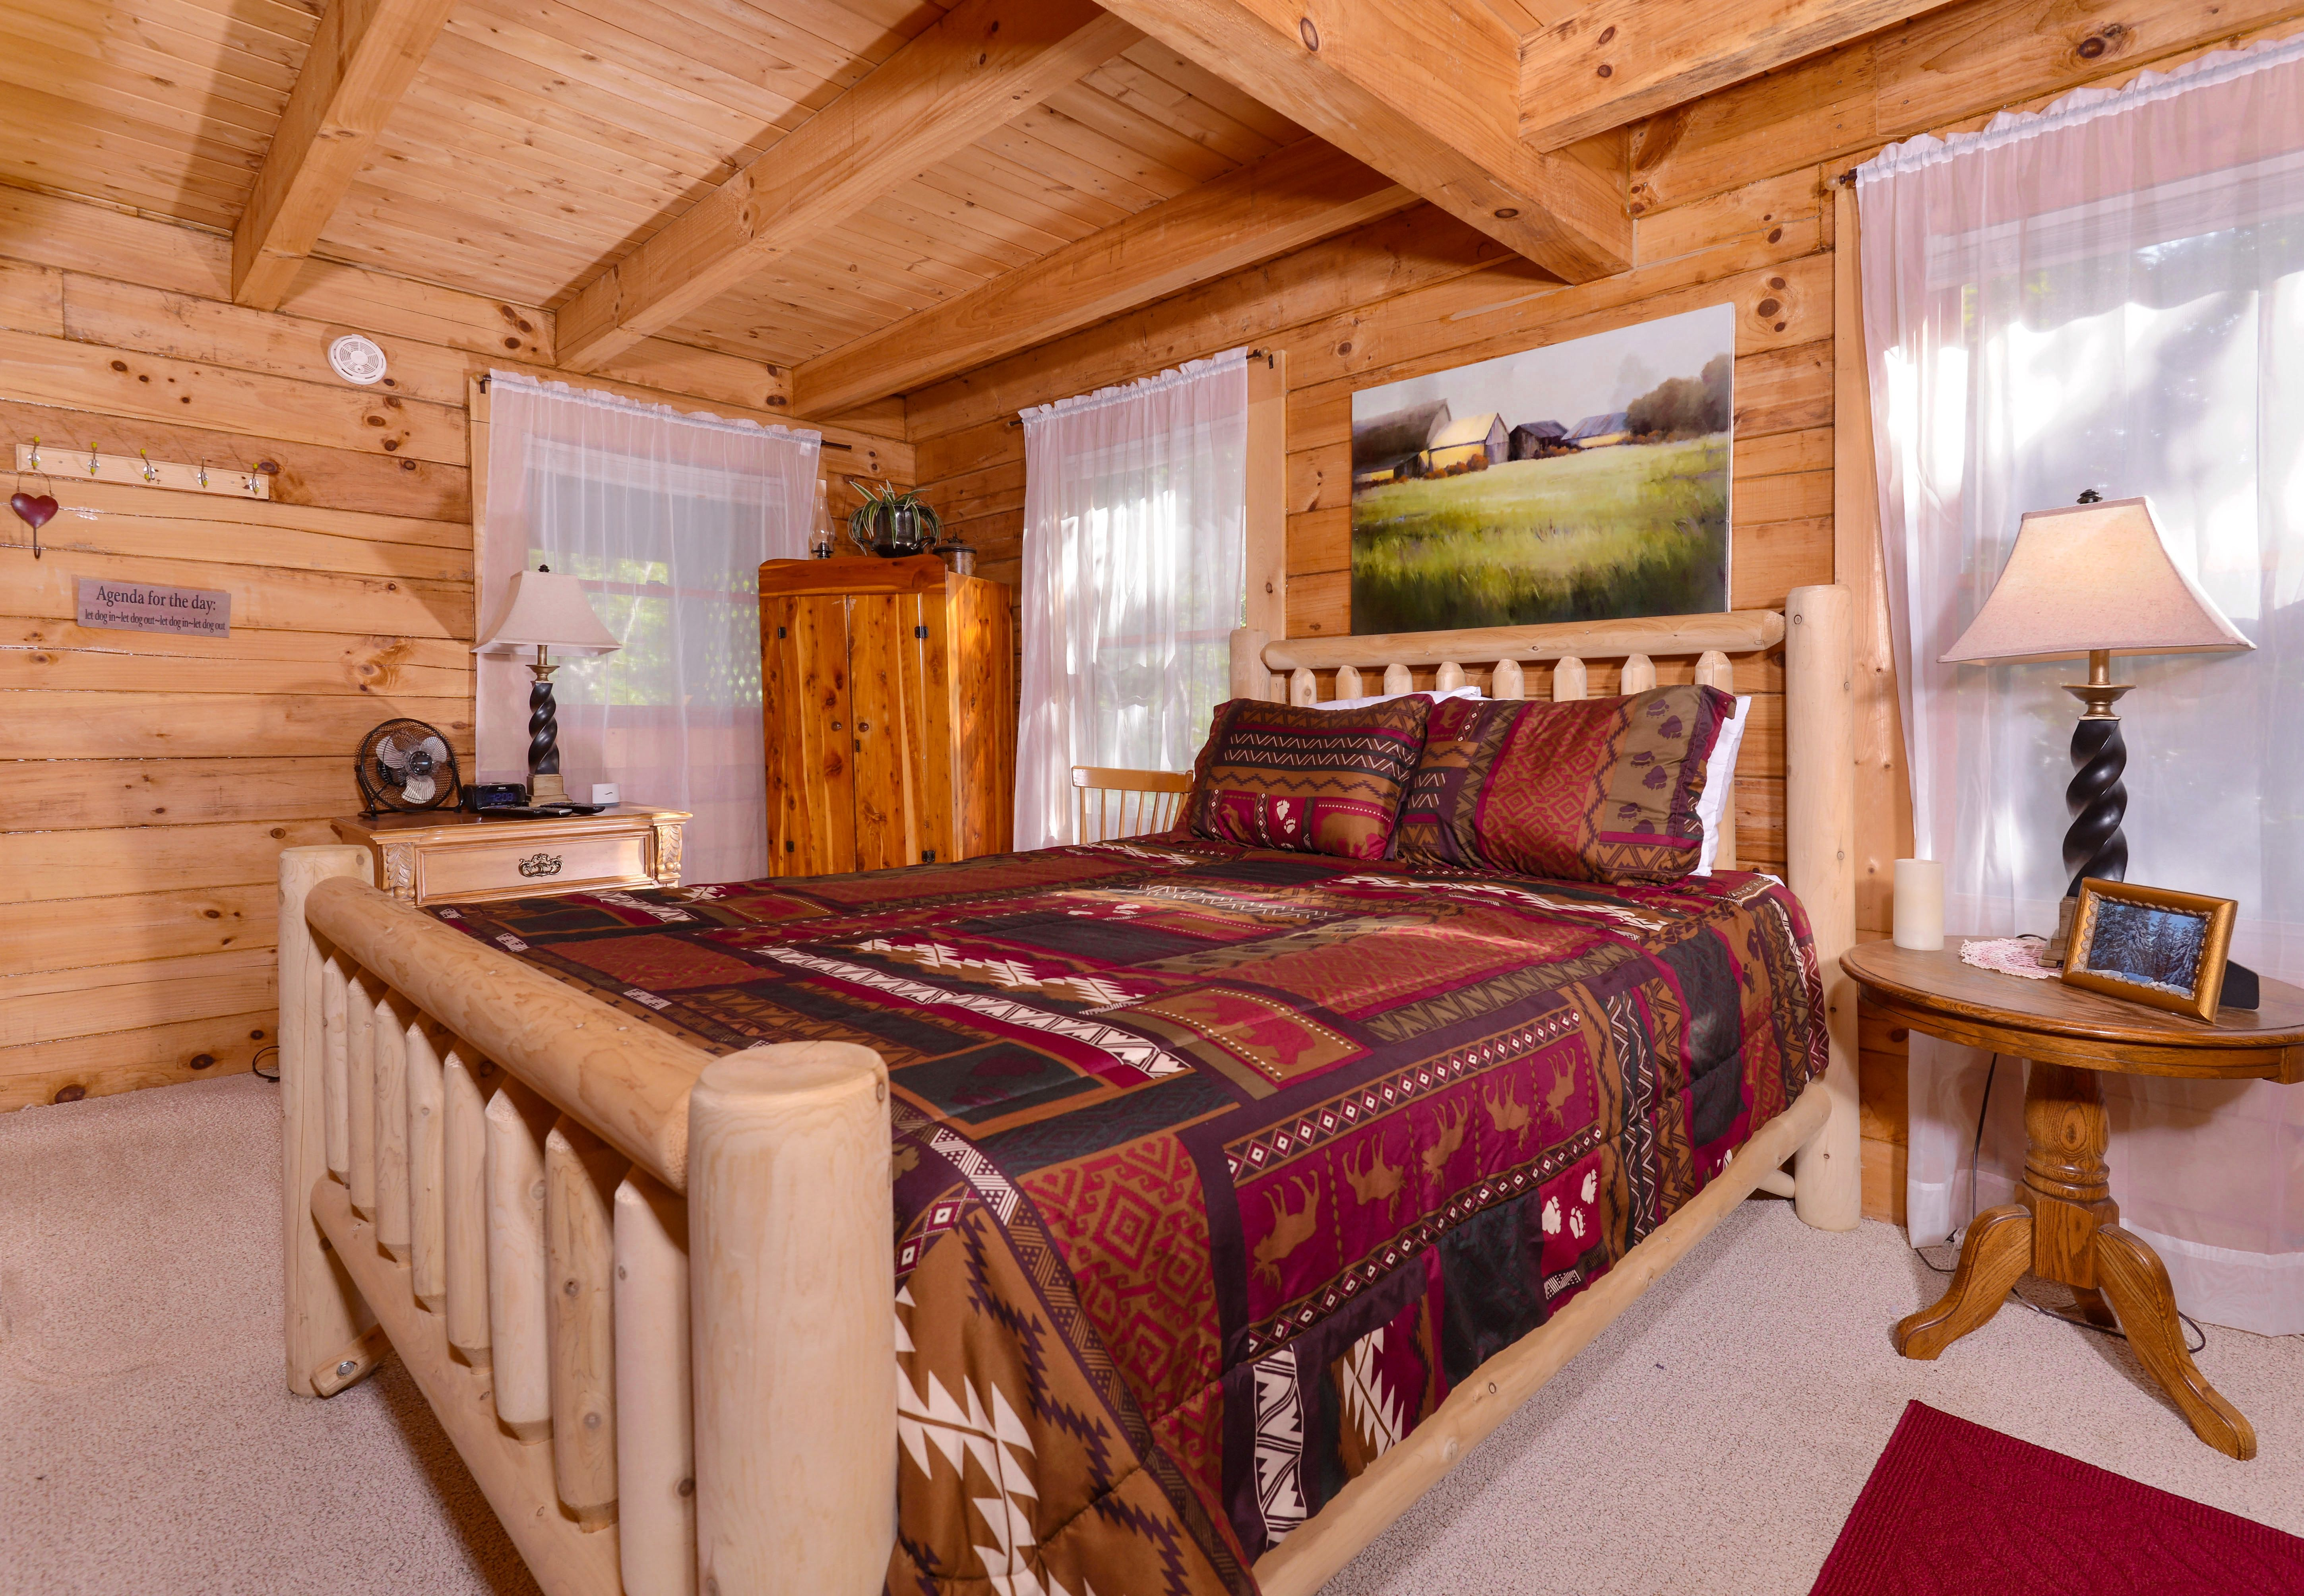 two at fireside friendly chalets tennessee bedroom cabin secluded pigeonforgetwobedroomcabinrentalthumb rental pigeon caneycreekmountaincabins pet forge mountain cabins smoky and